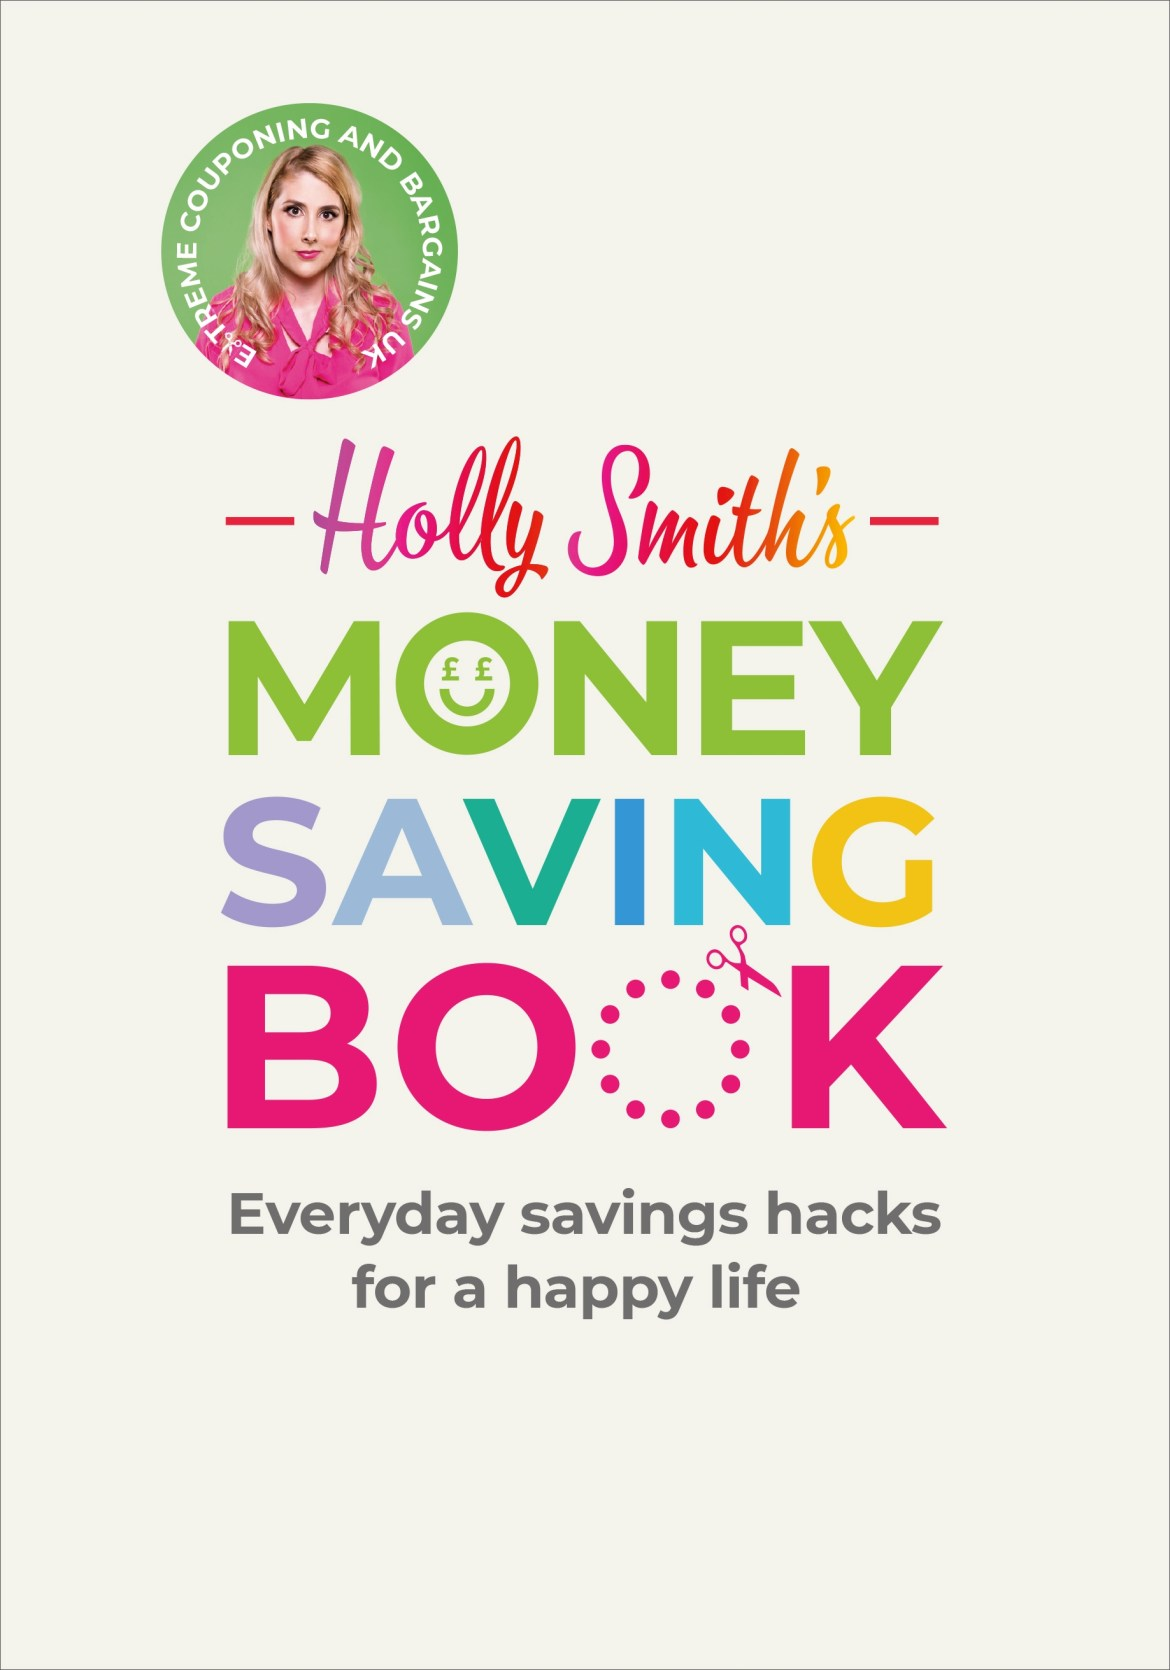 Holly Smith's Money Saving Book contains loads of ways to get more bang for your buck